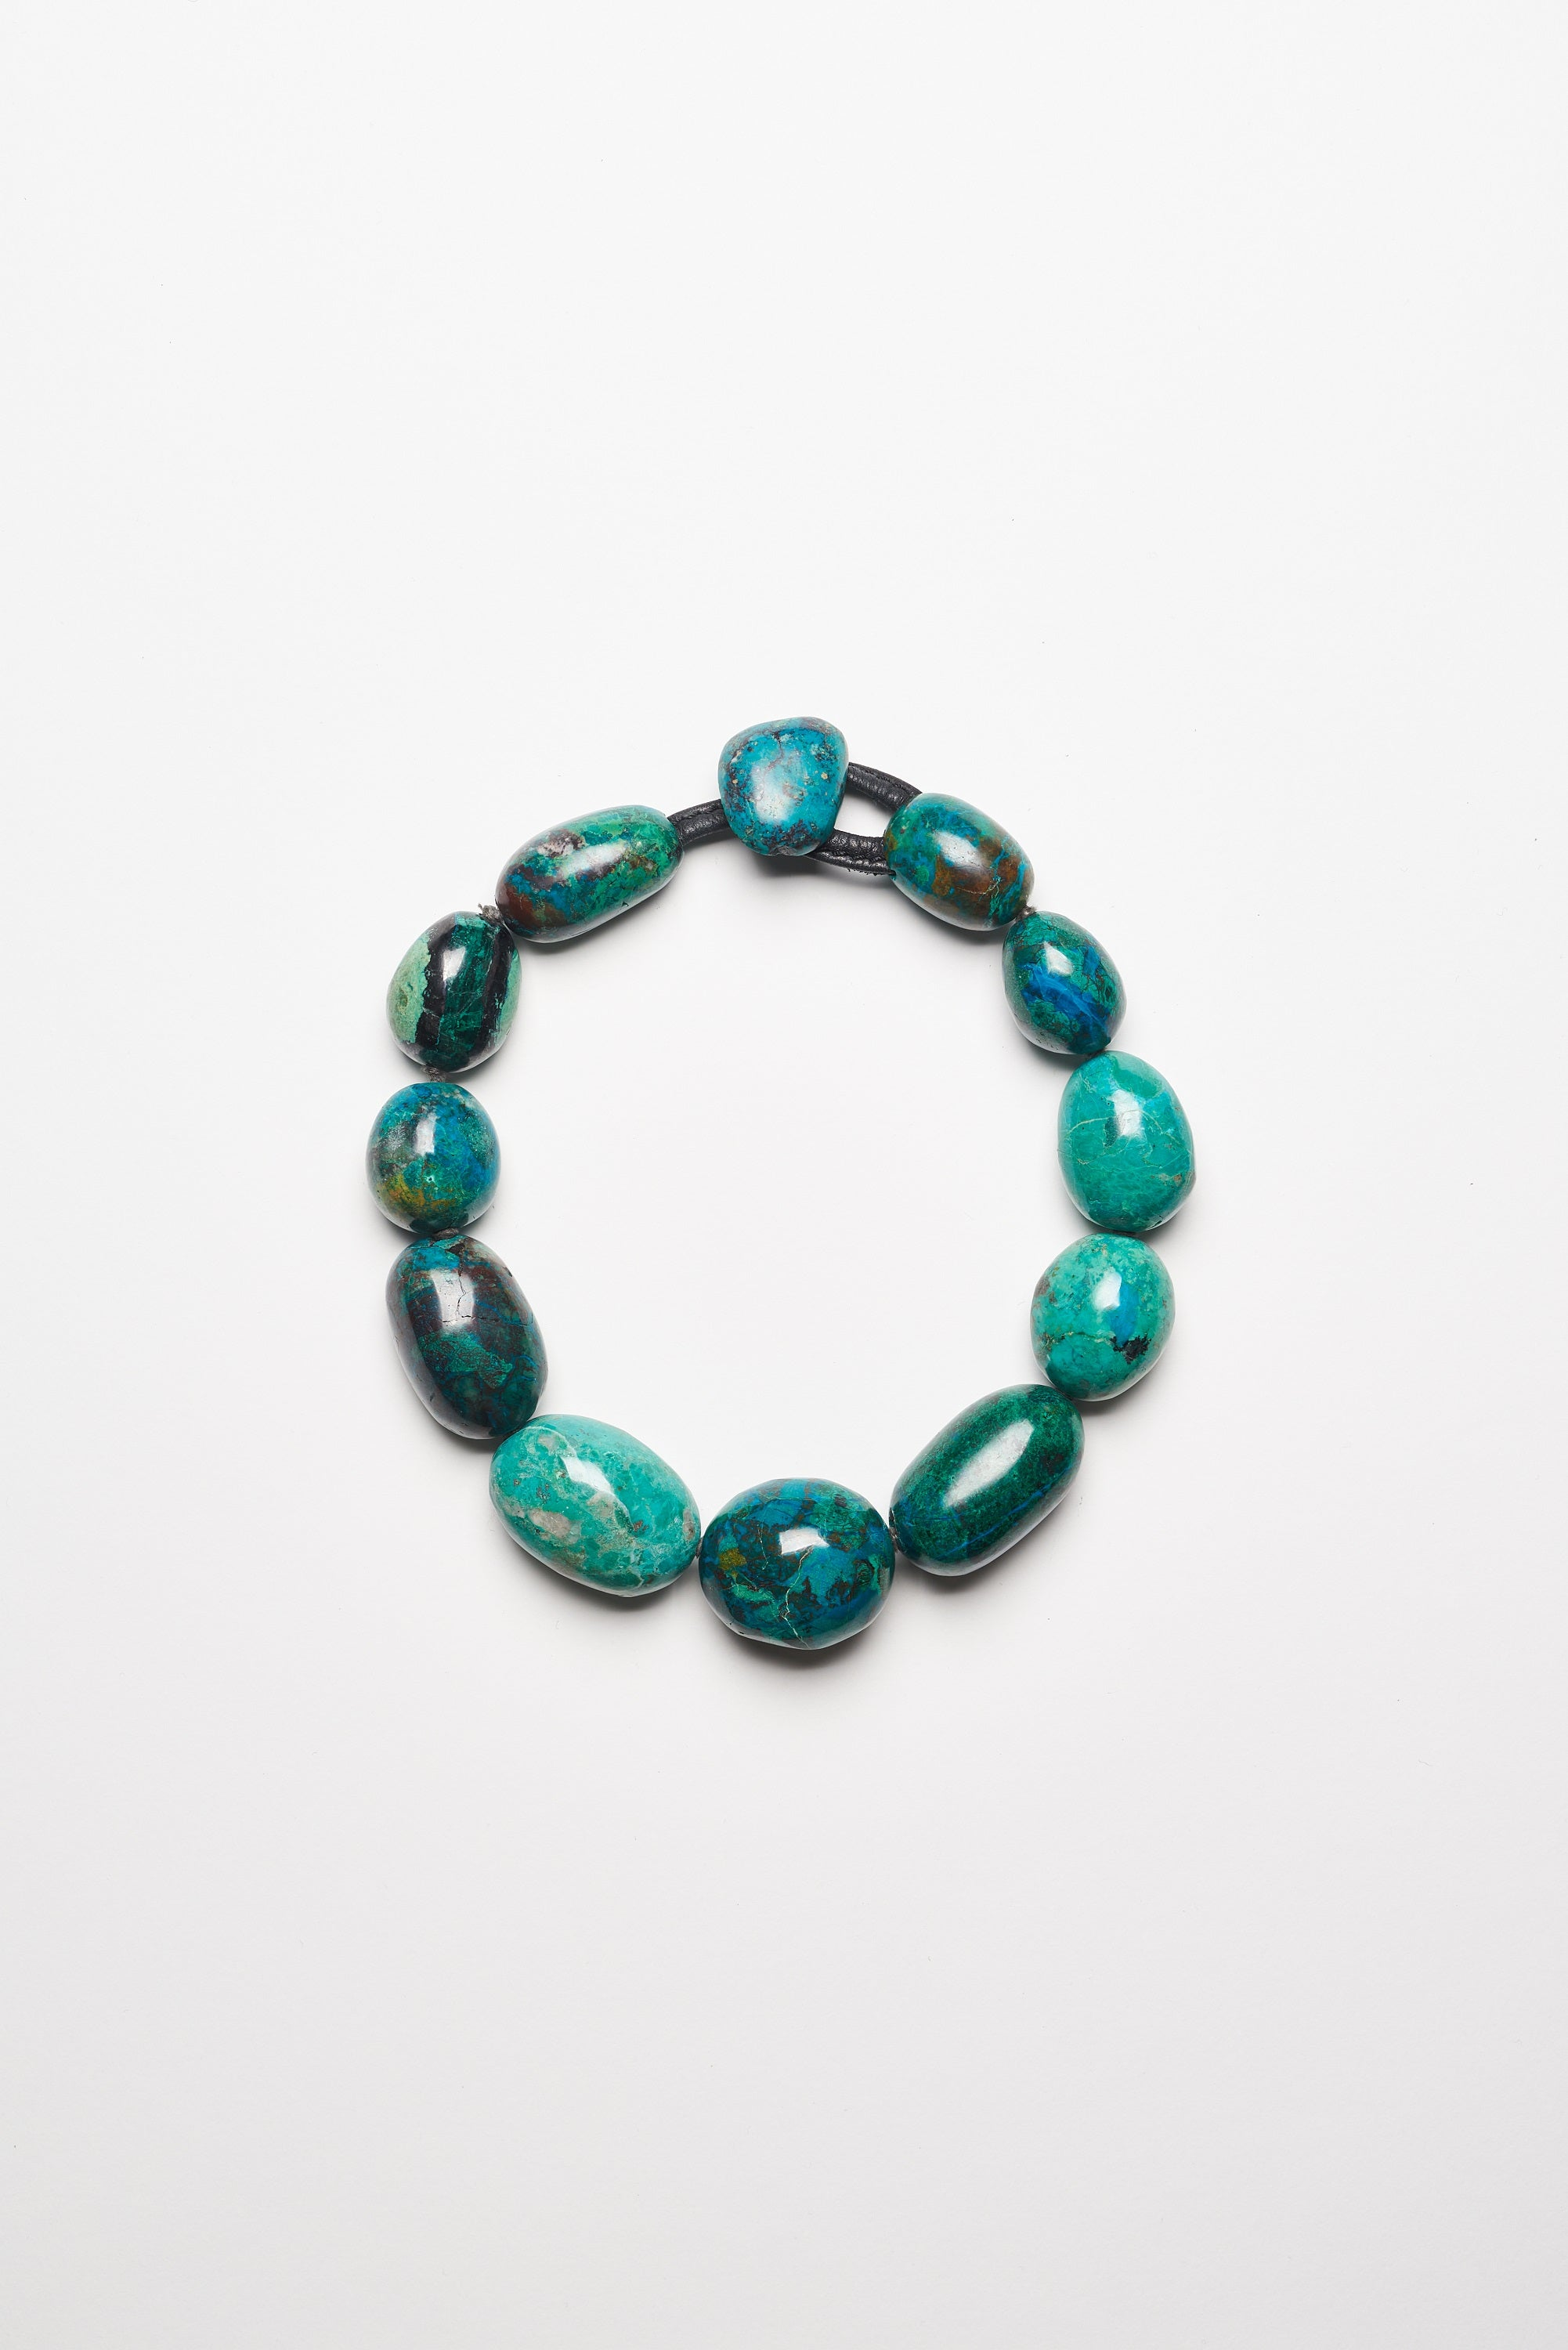 Necklace in chrysocolla